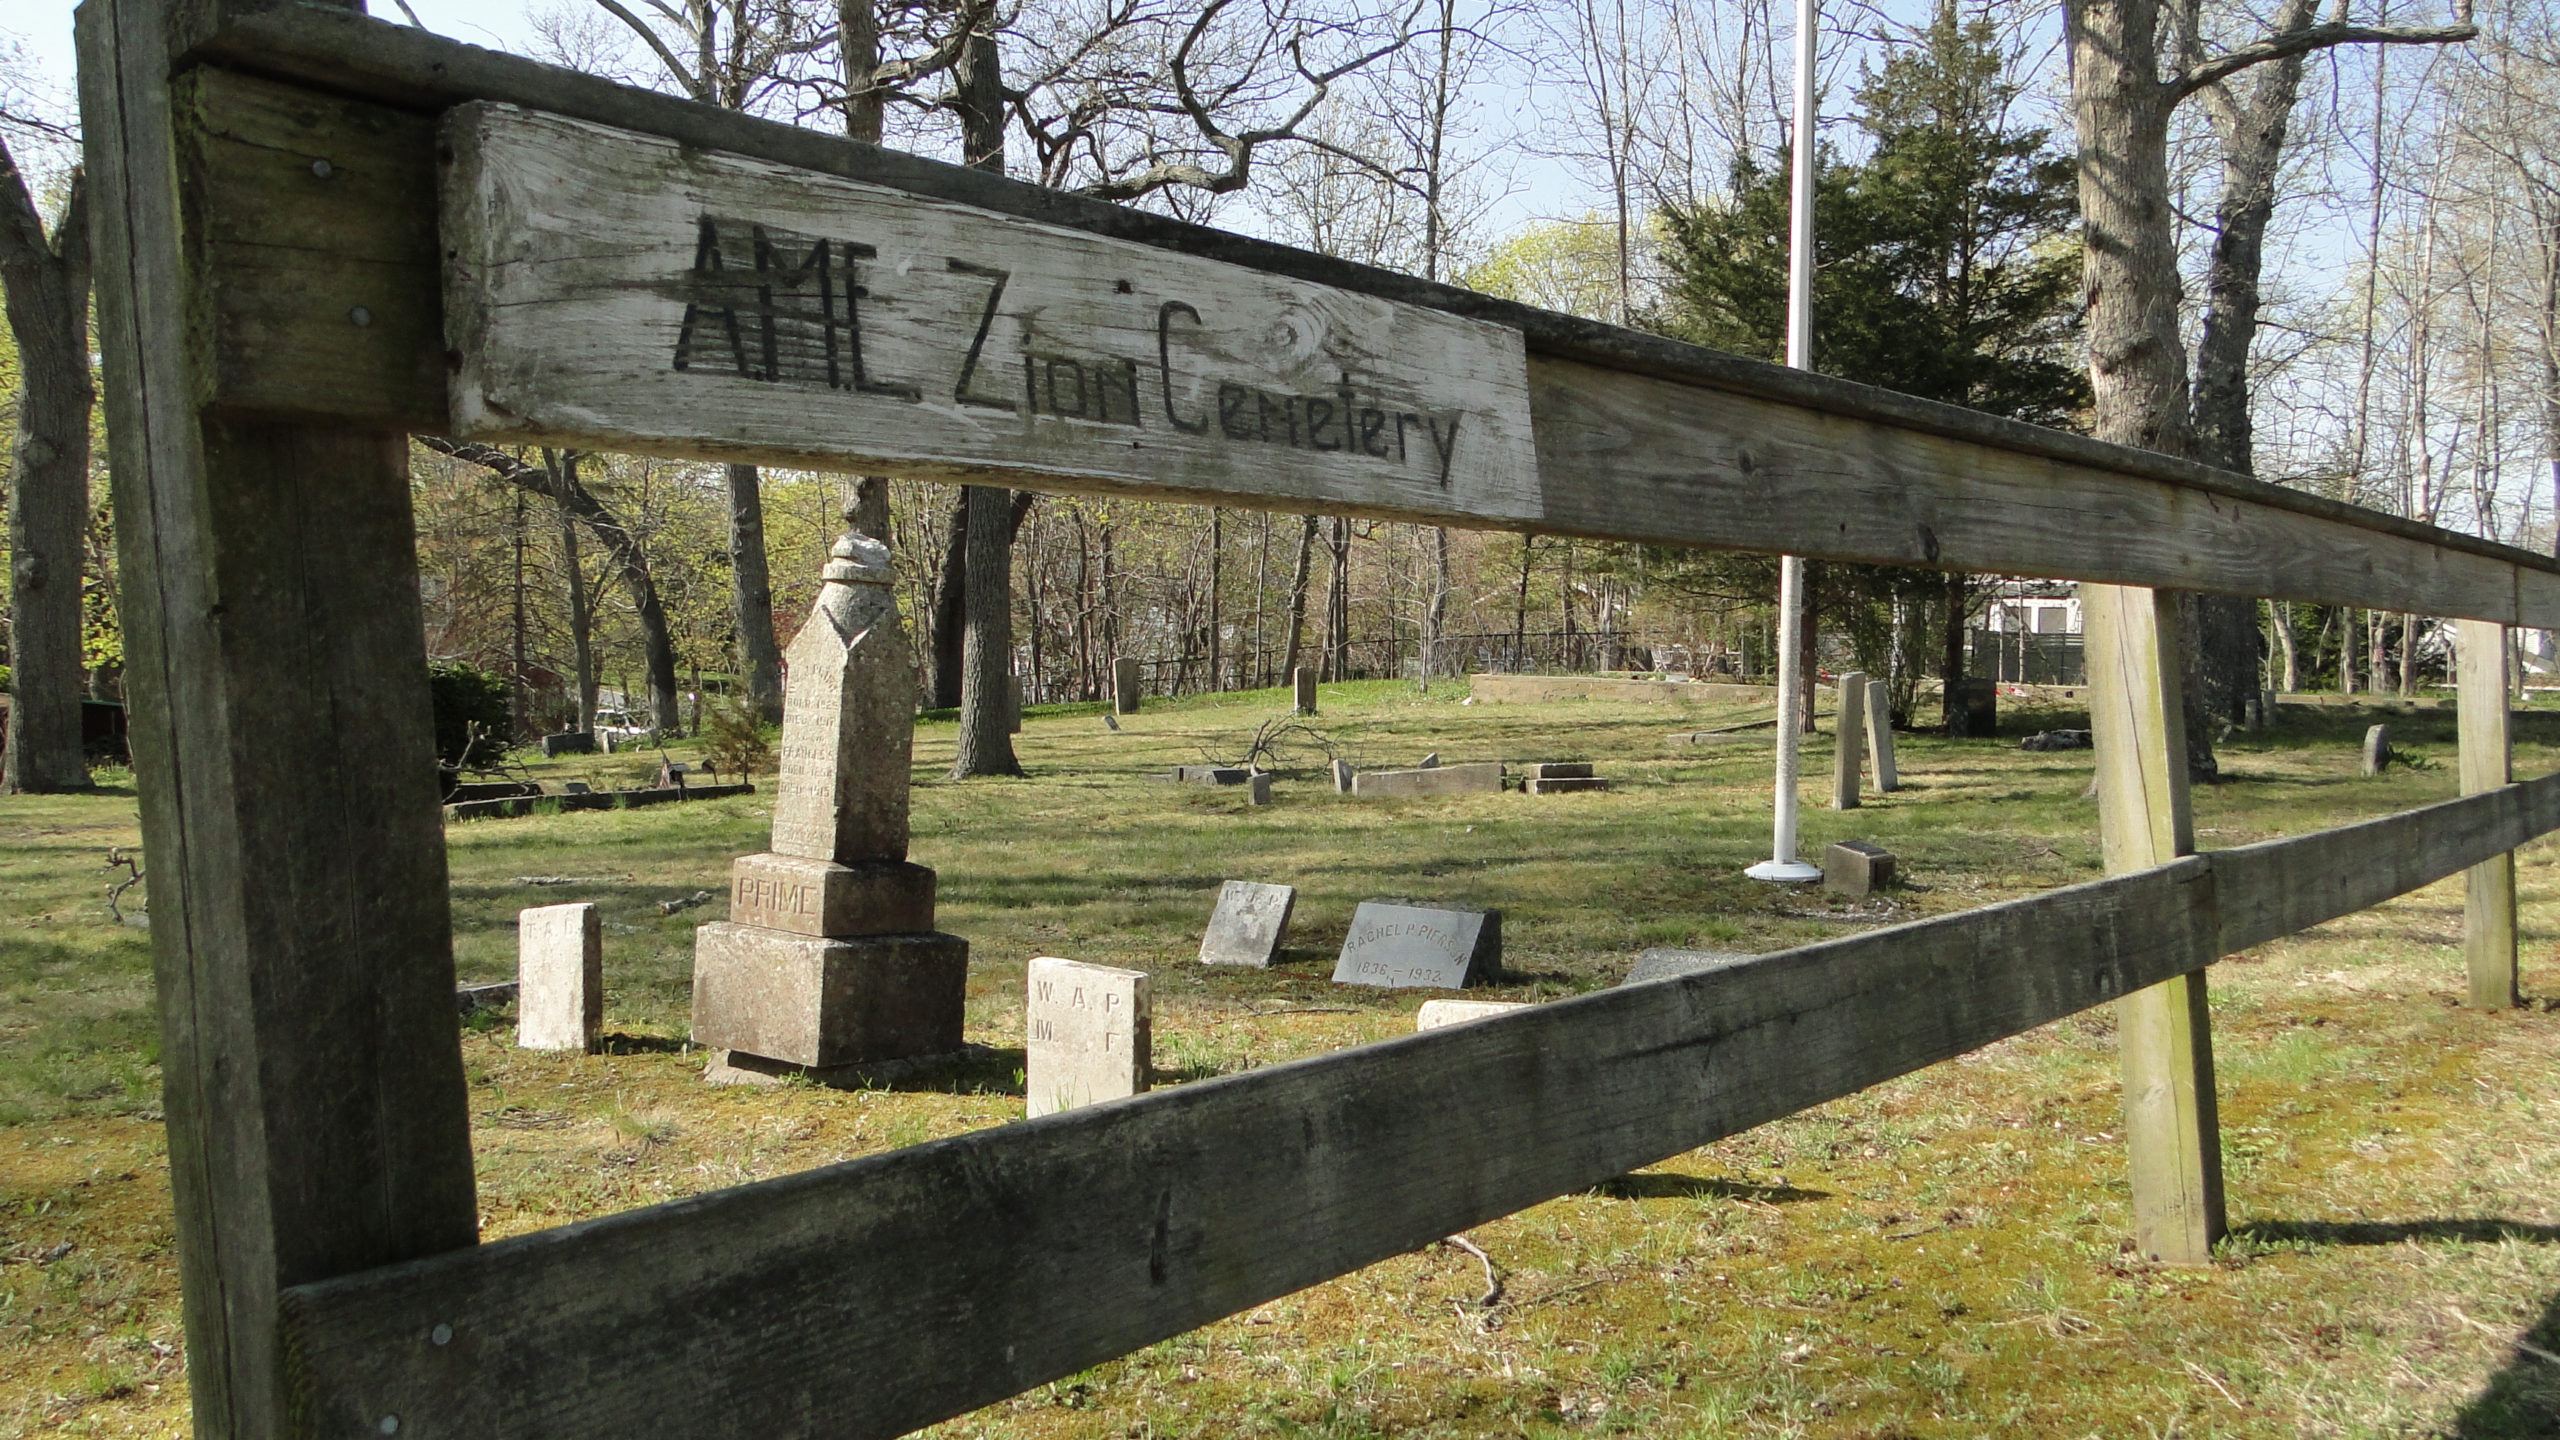 The Eastville Community The African Methodist Episcopal Zion Cemetery in Sag Harbor's Eastville By COLLEEN REYNOLDS